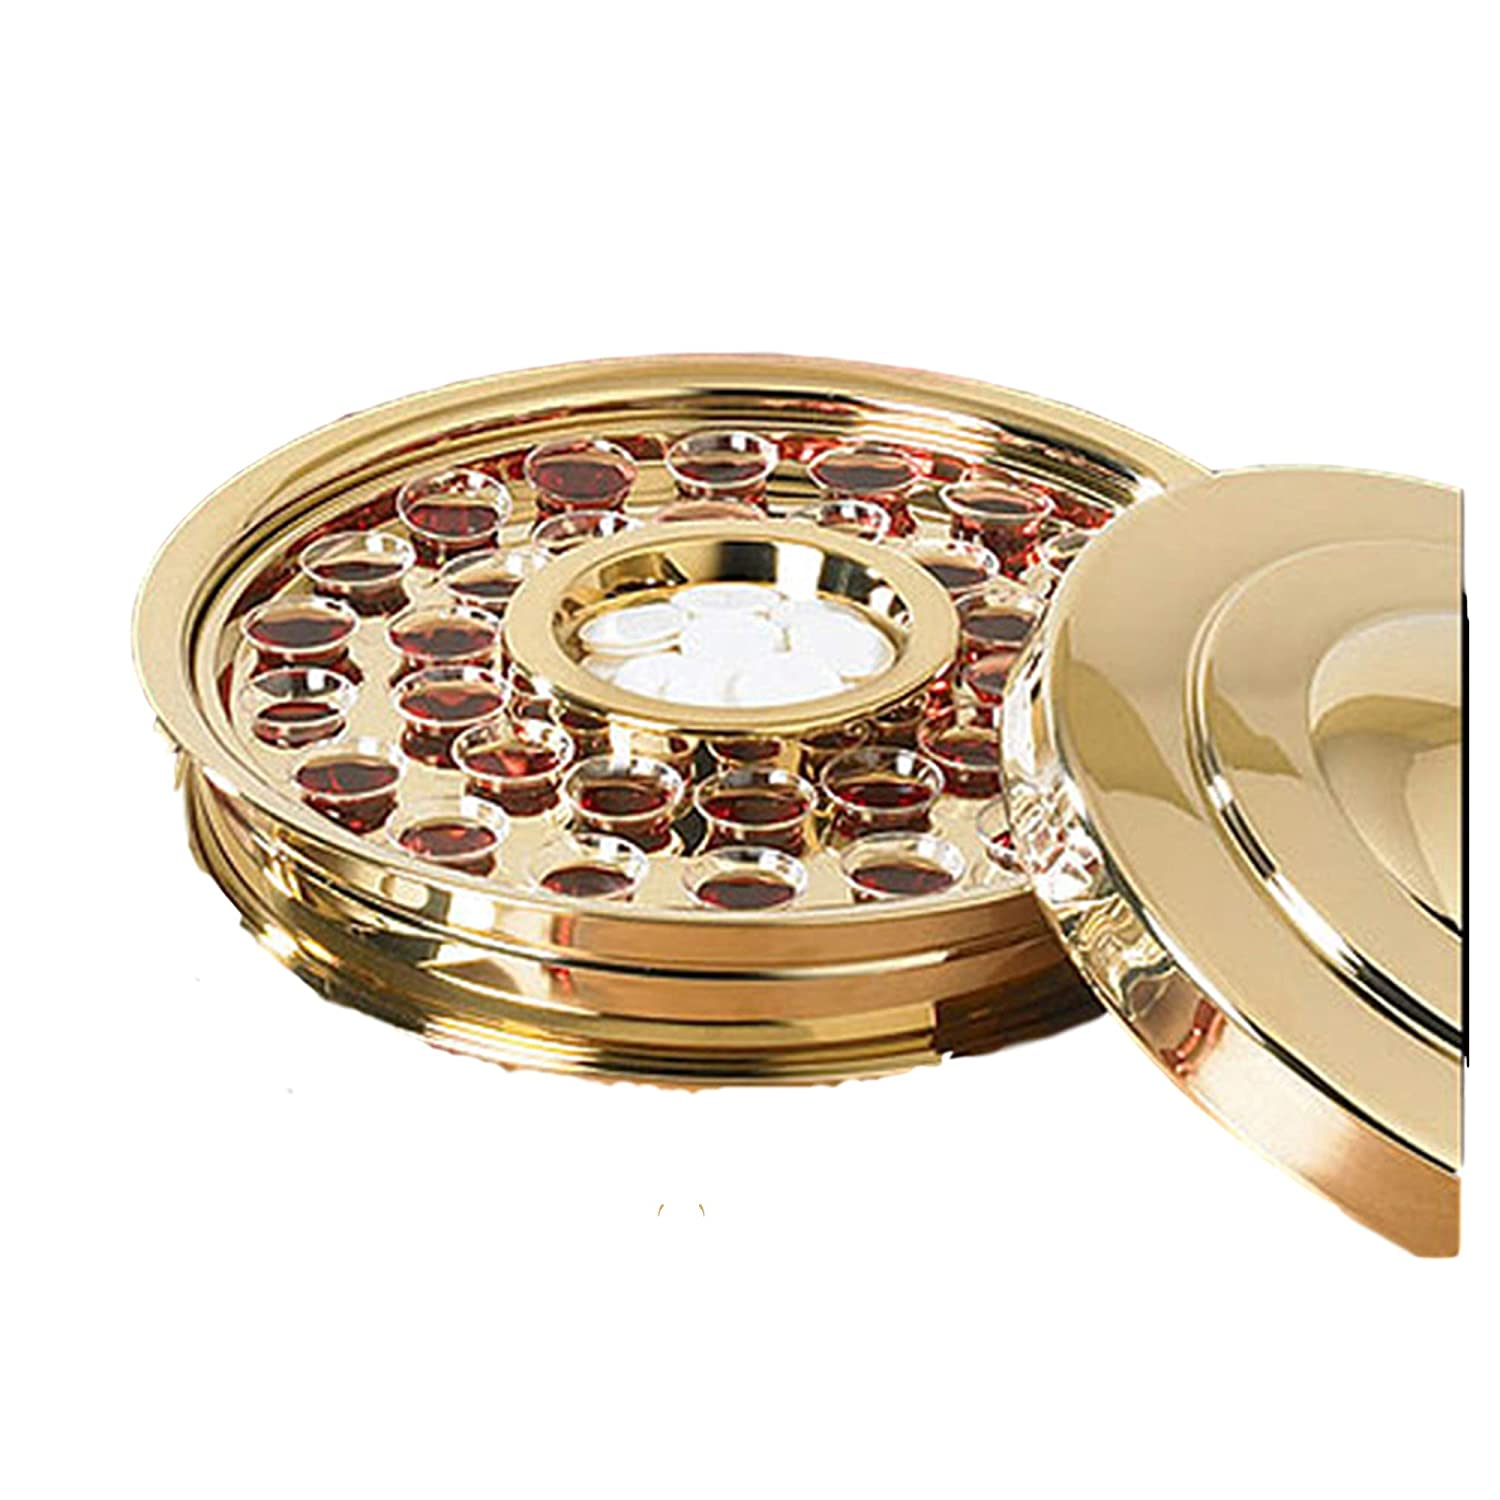 Stackable Communion Tray with Center Bread Plate & Tray Cover - Stainless Steel Brass Tone